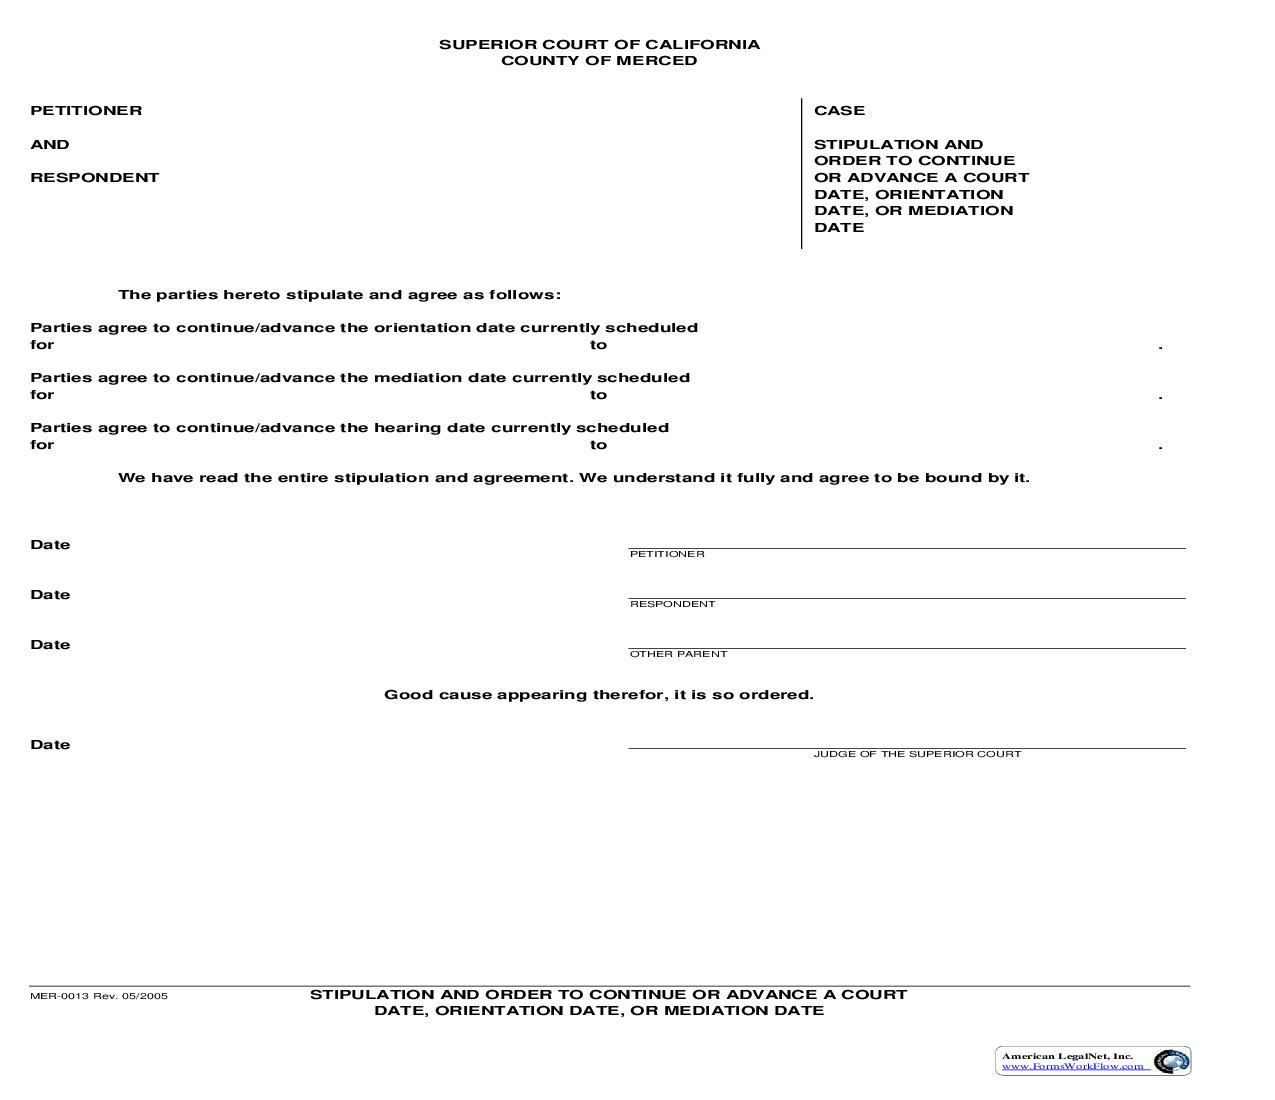 Stipulation And Order To Continue Or Advance A Court Date {MER-0013}      California